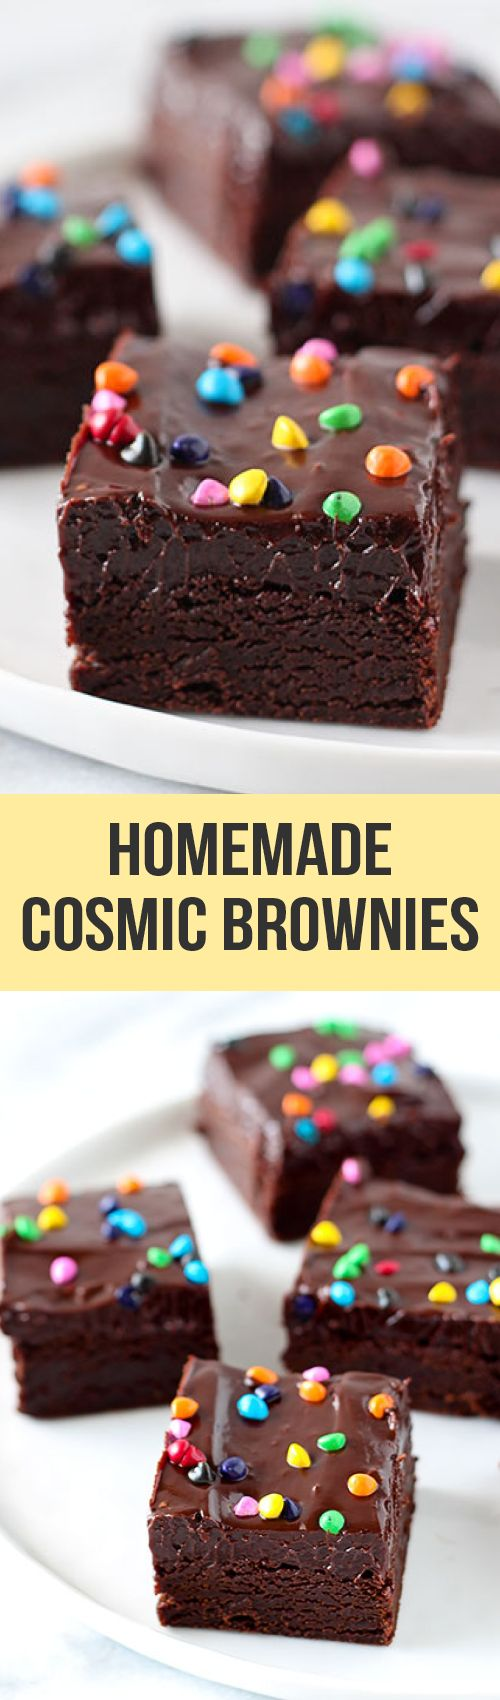 This copycat recipe for Cosmic Brownies is ultra rich, fudgy, and chewy just like the kind you buy at the store but oh so much better with no preservatives!